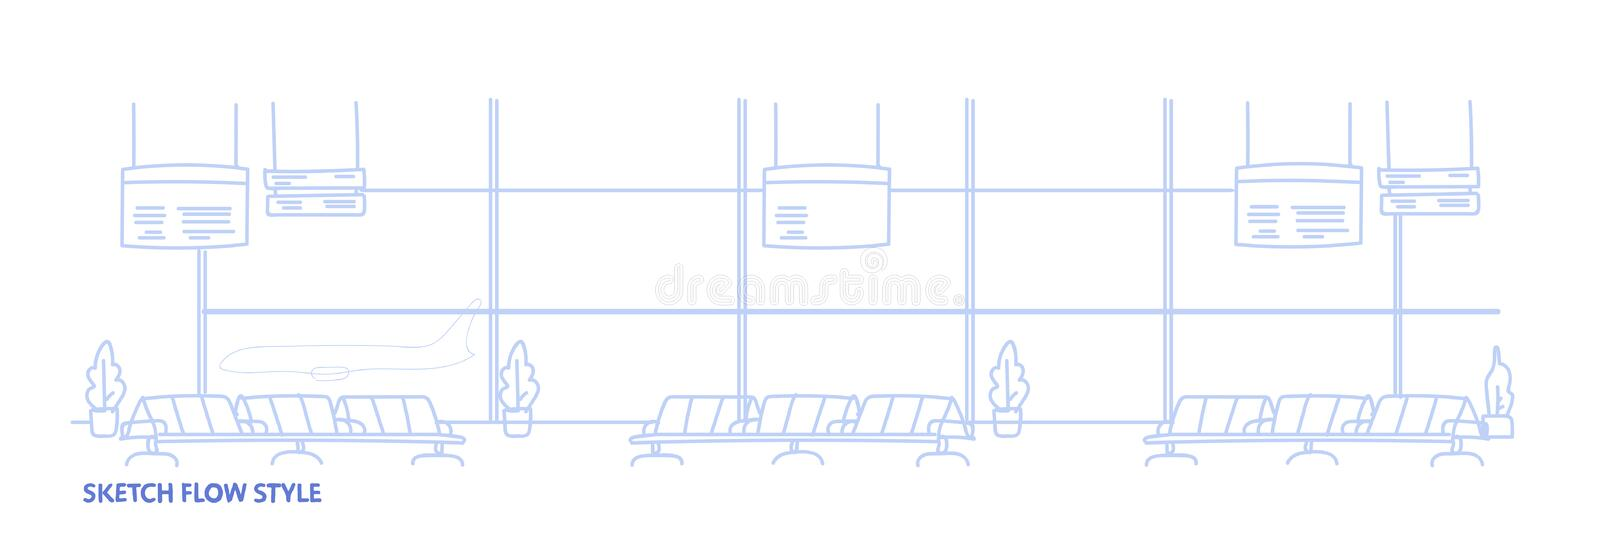 Airport waiting hall departure terminal interior empty no people sketch flow style horizontal banner. Vector illustration stock illustration